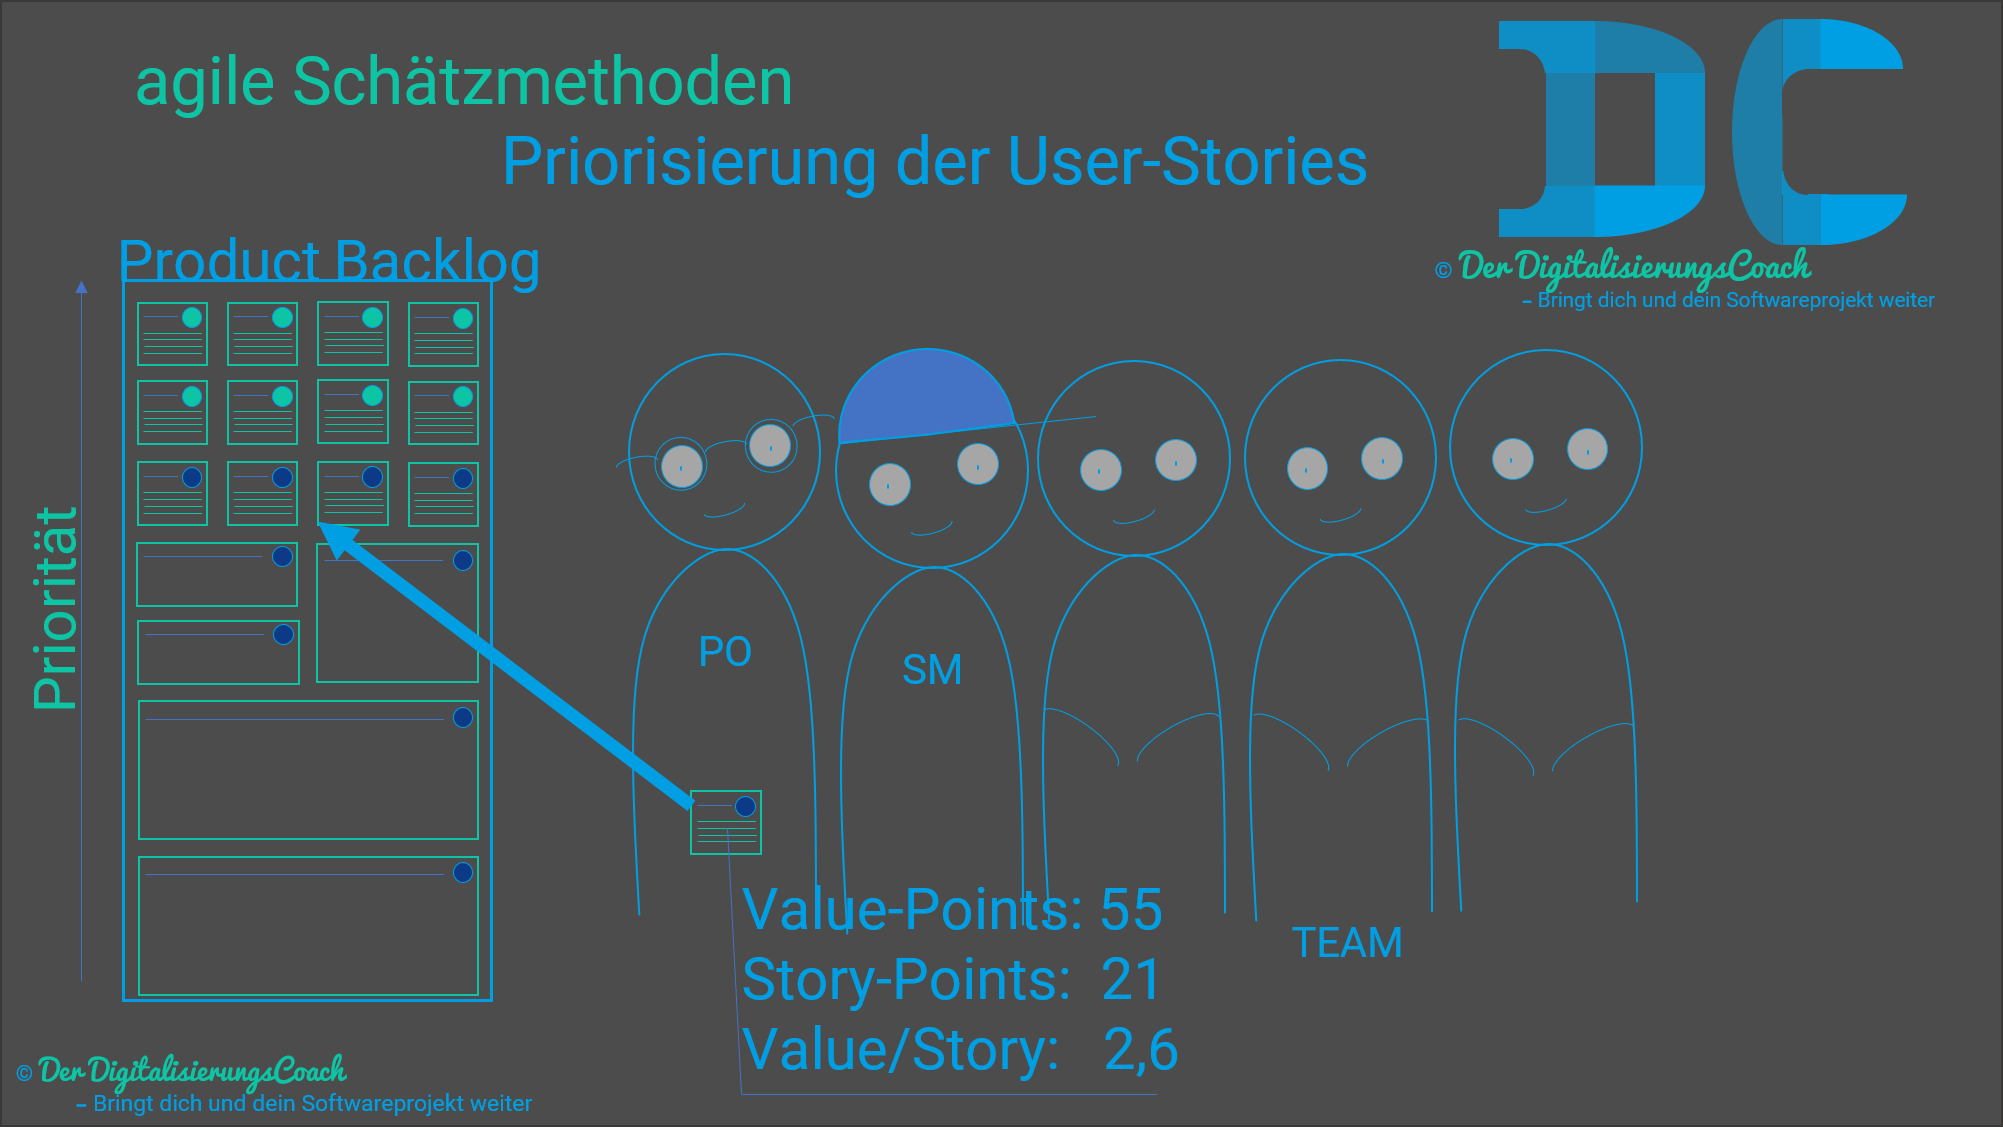 Agile Schätzmethoden Priorisierung der User-Stories im Backlog.png